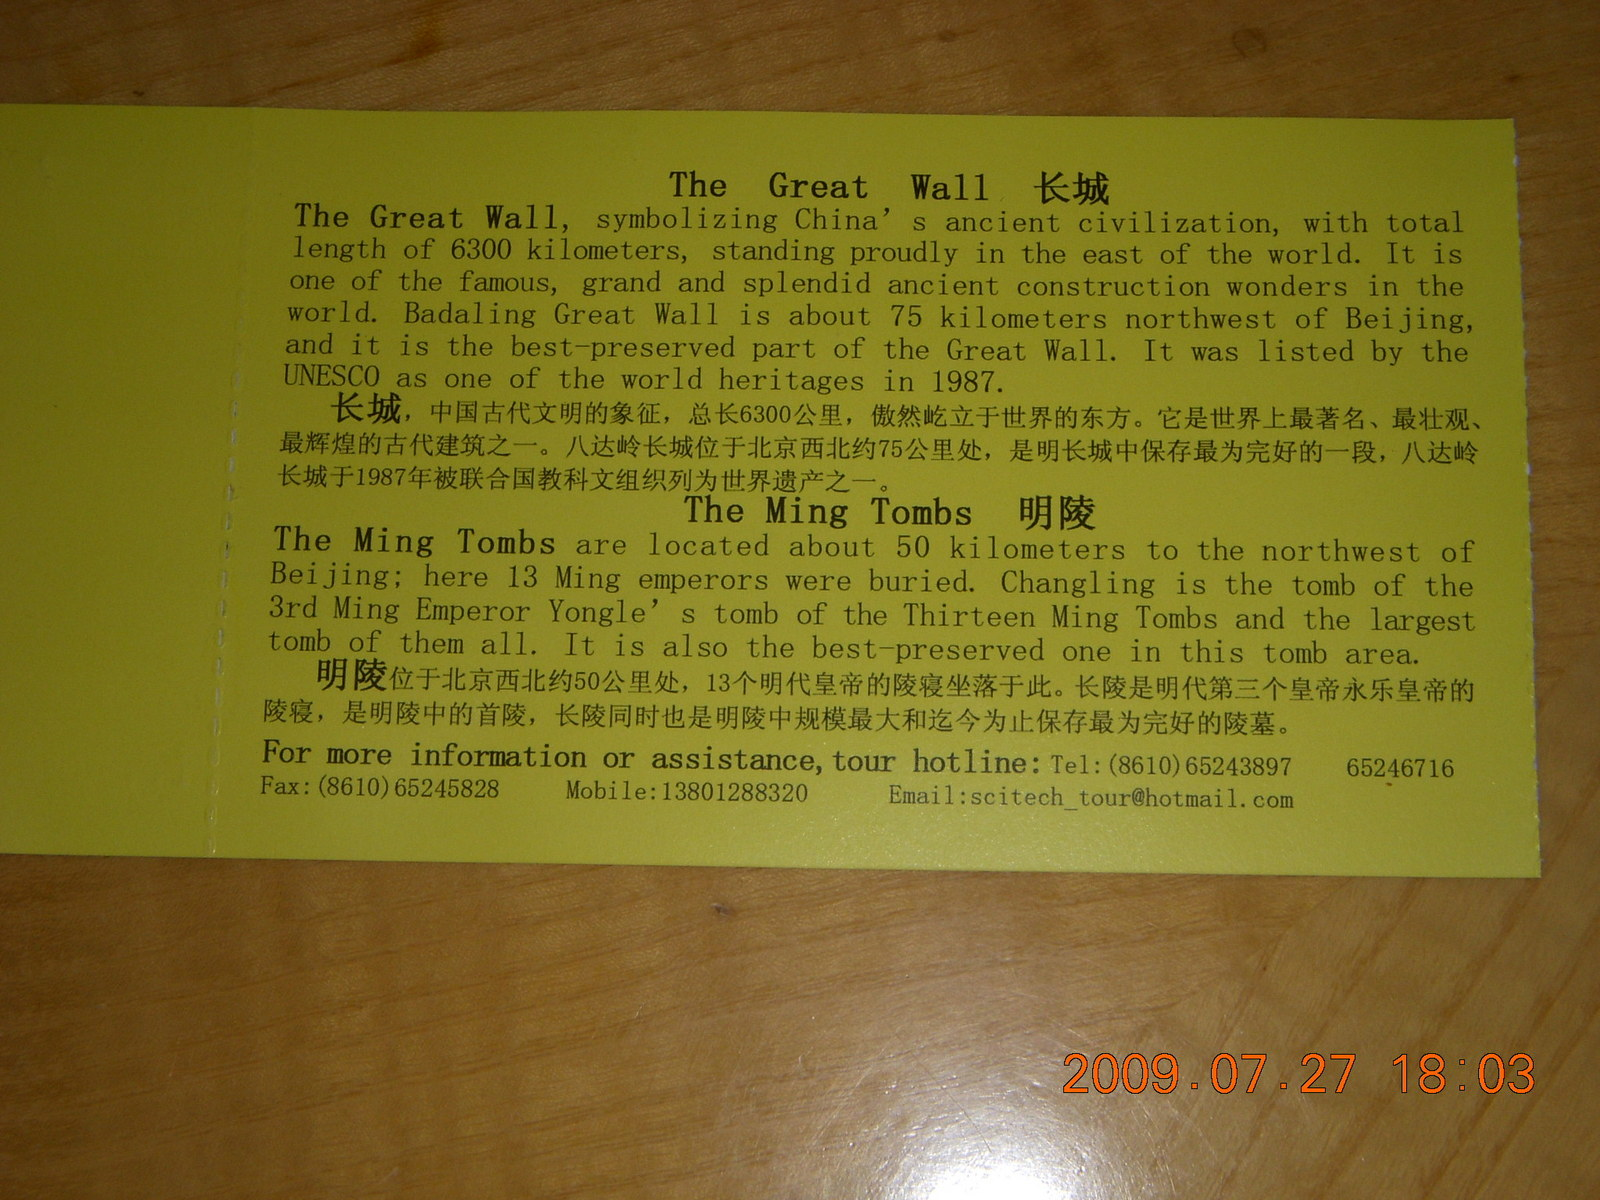 China eclipse - Beijing tour ticket back